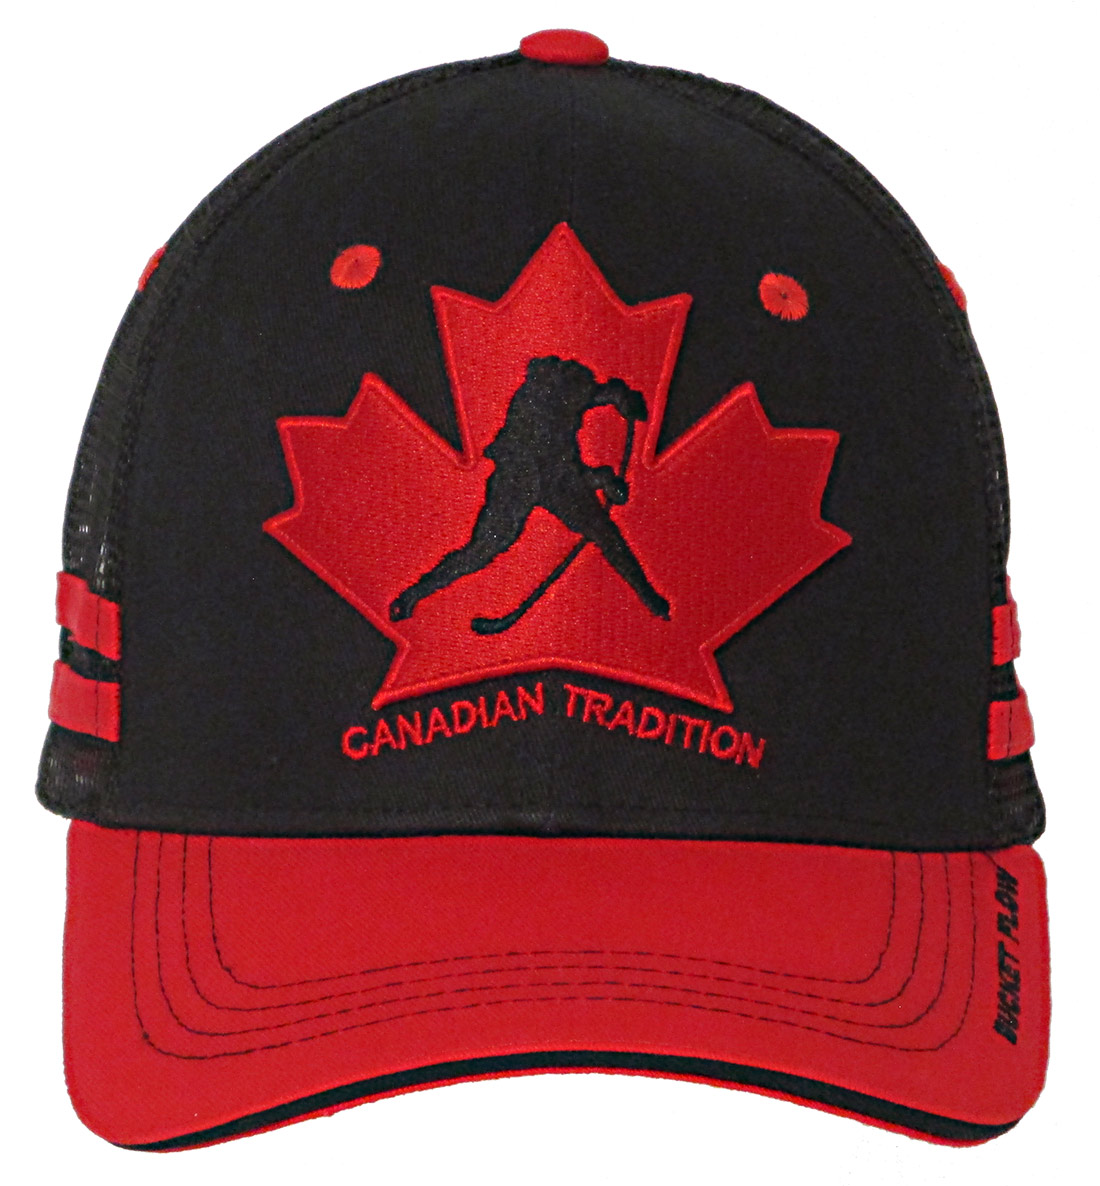 Canadian Tradition